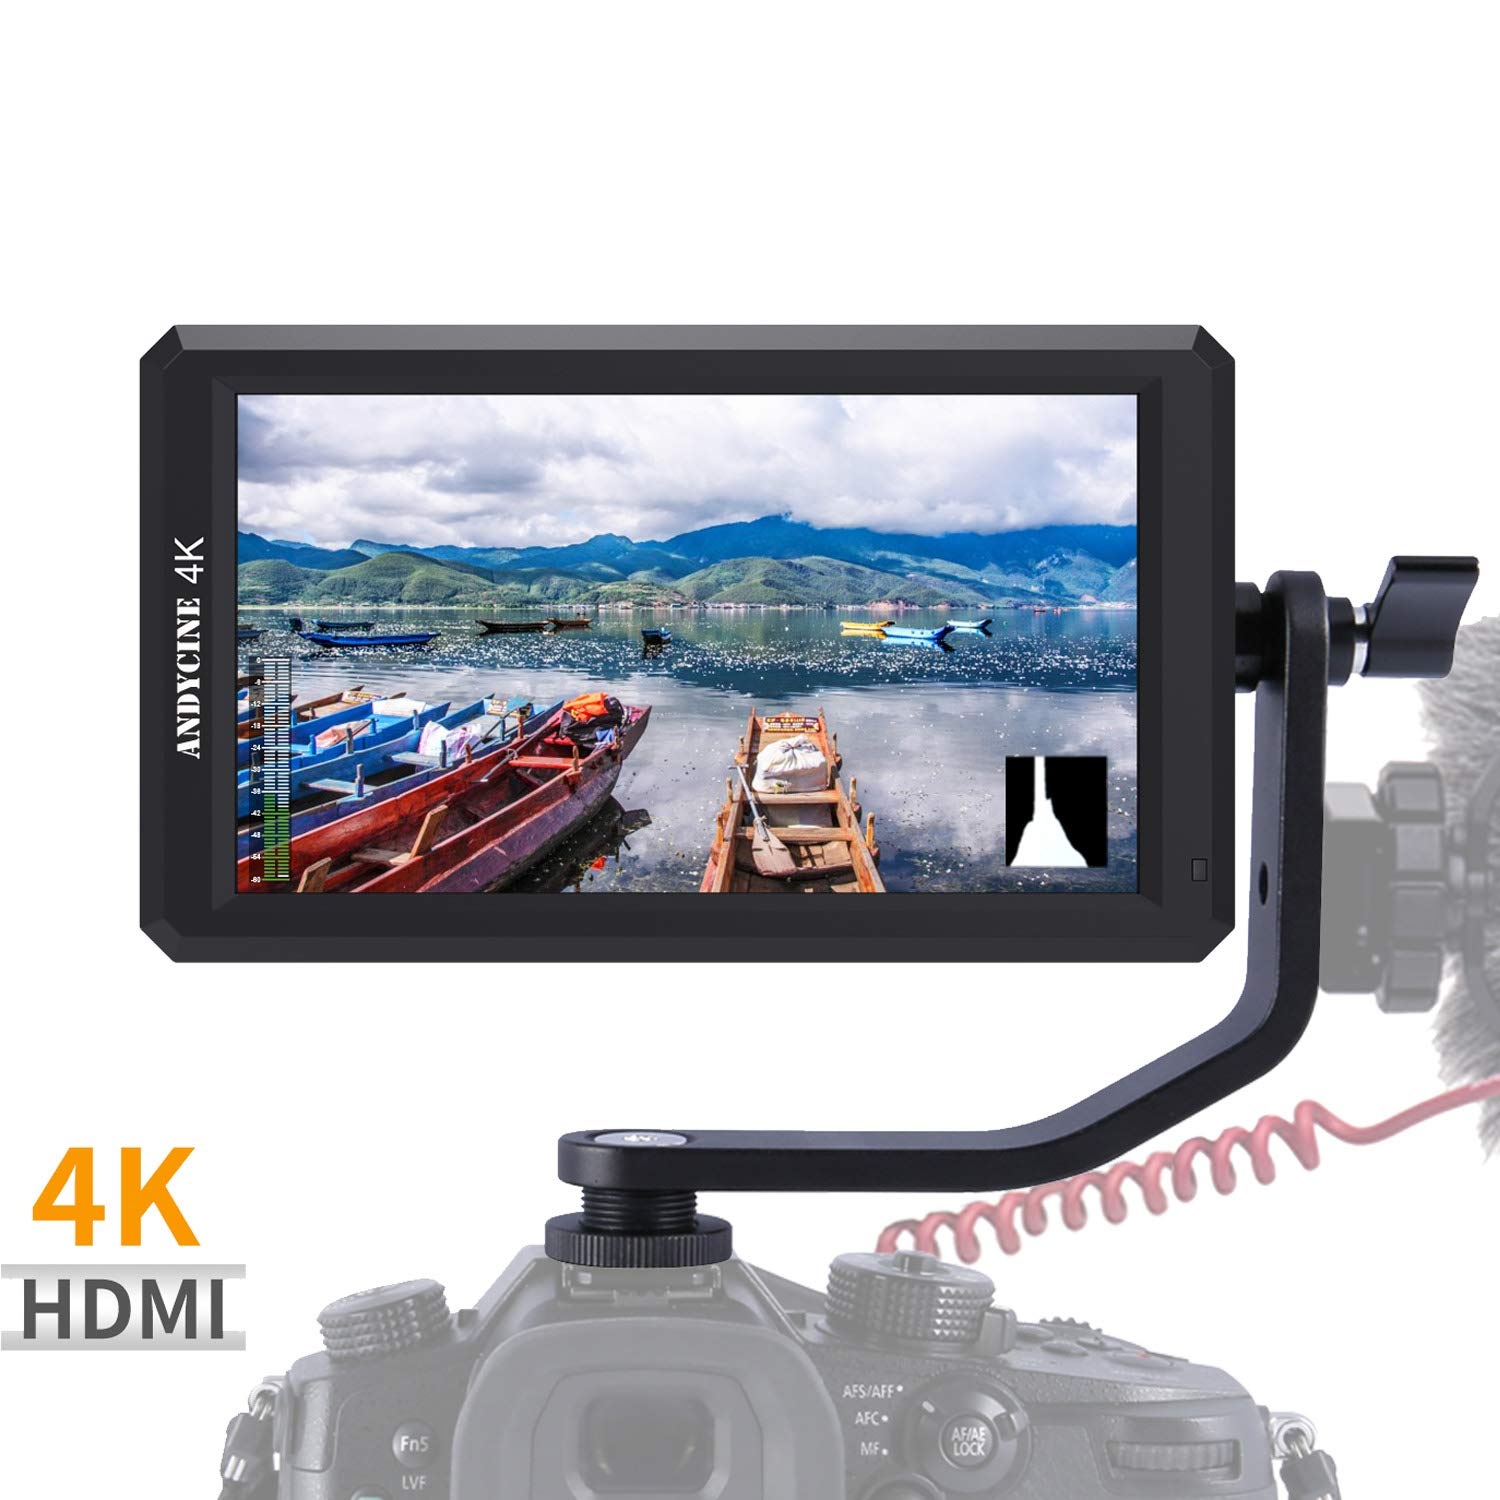 ANDYCINE A6 5.7 Inch HDMI Field Monitor 1920x1080 DC 8V Power Output Swivel Arm for Sony,Nikon,Canon DSLR and Gimbals by ANDYCINE